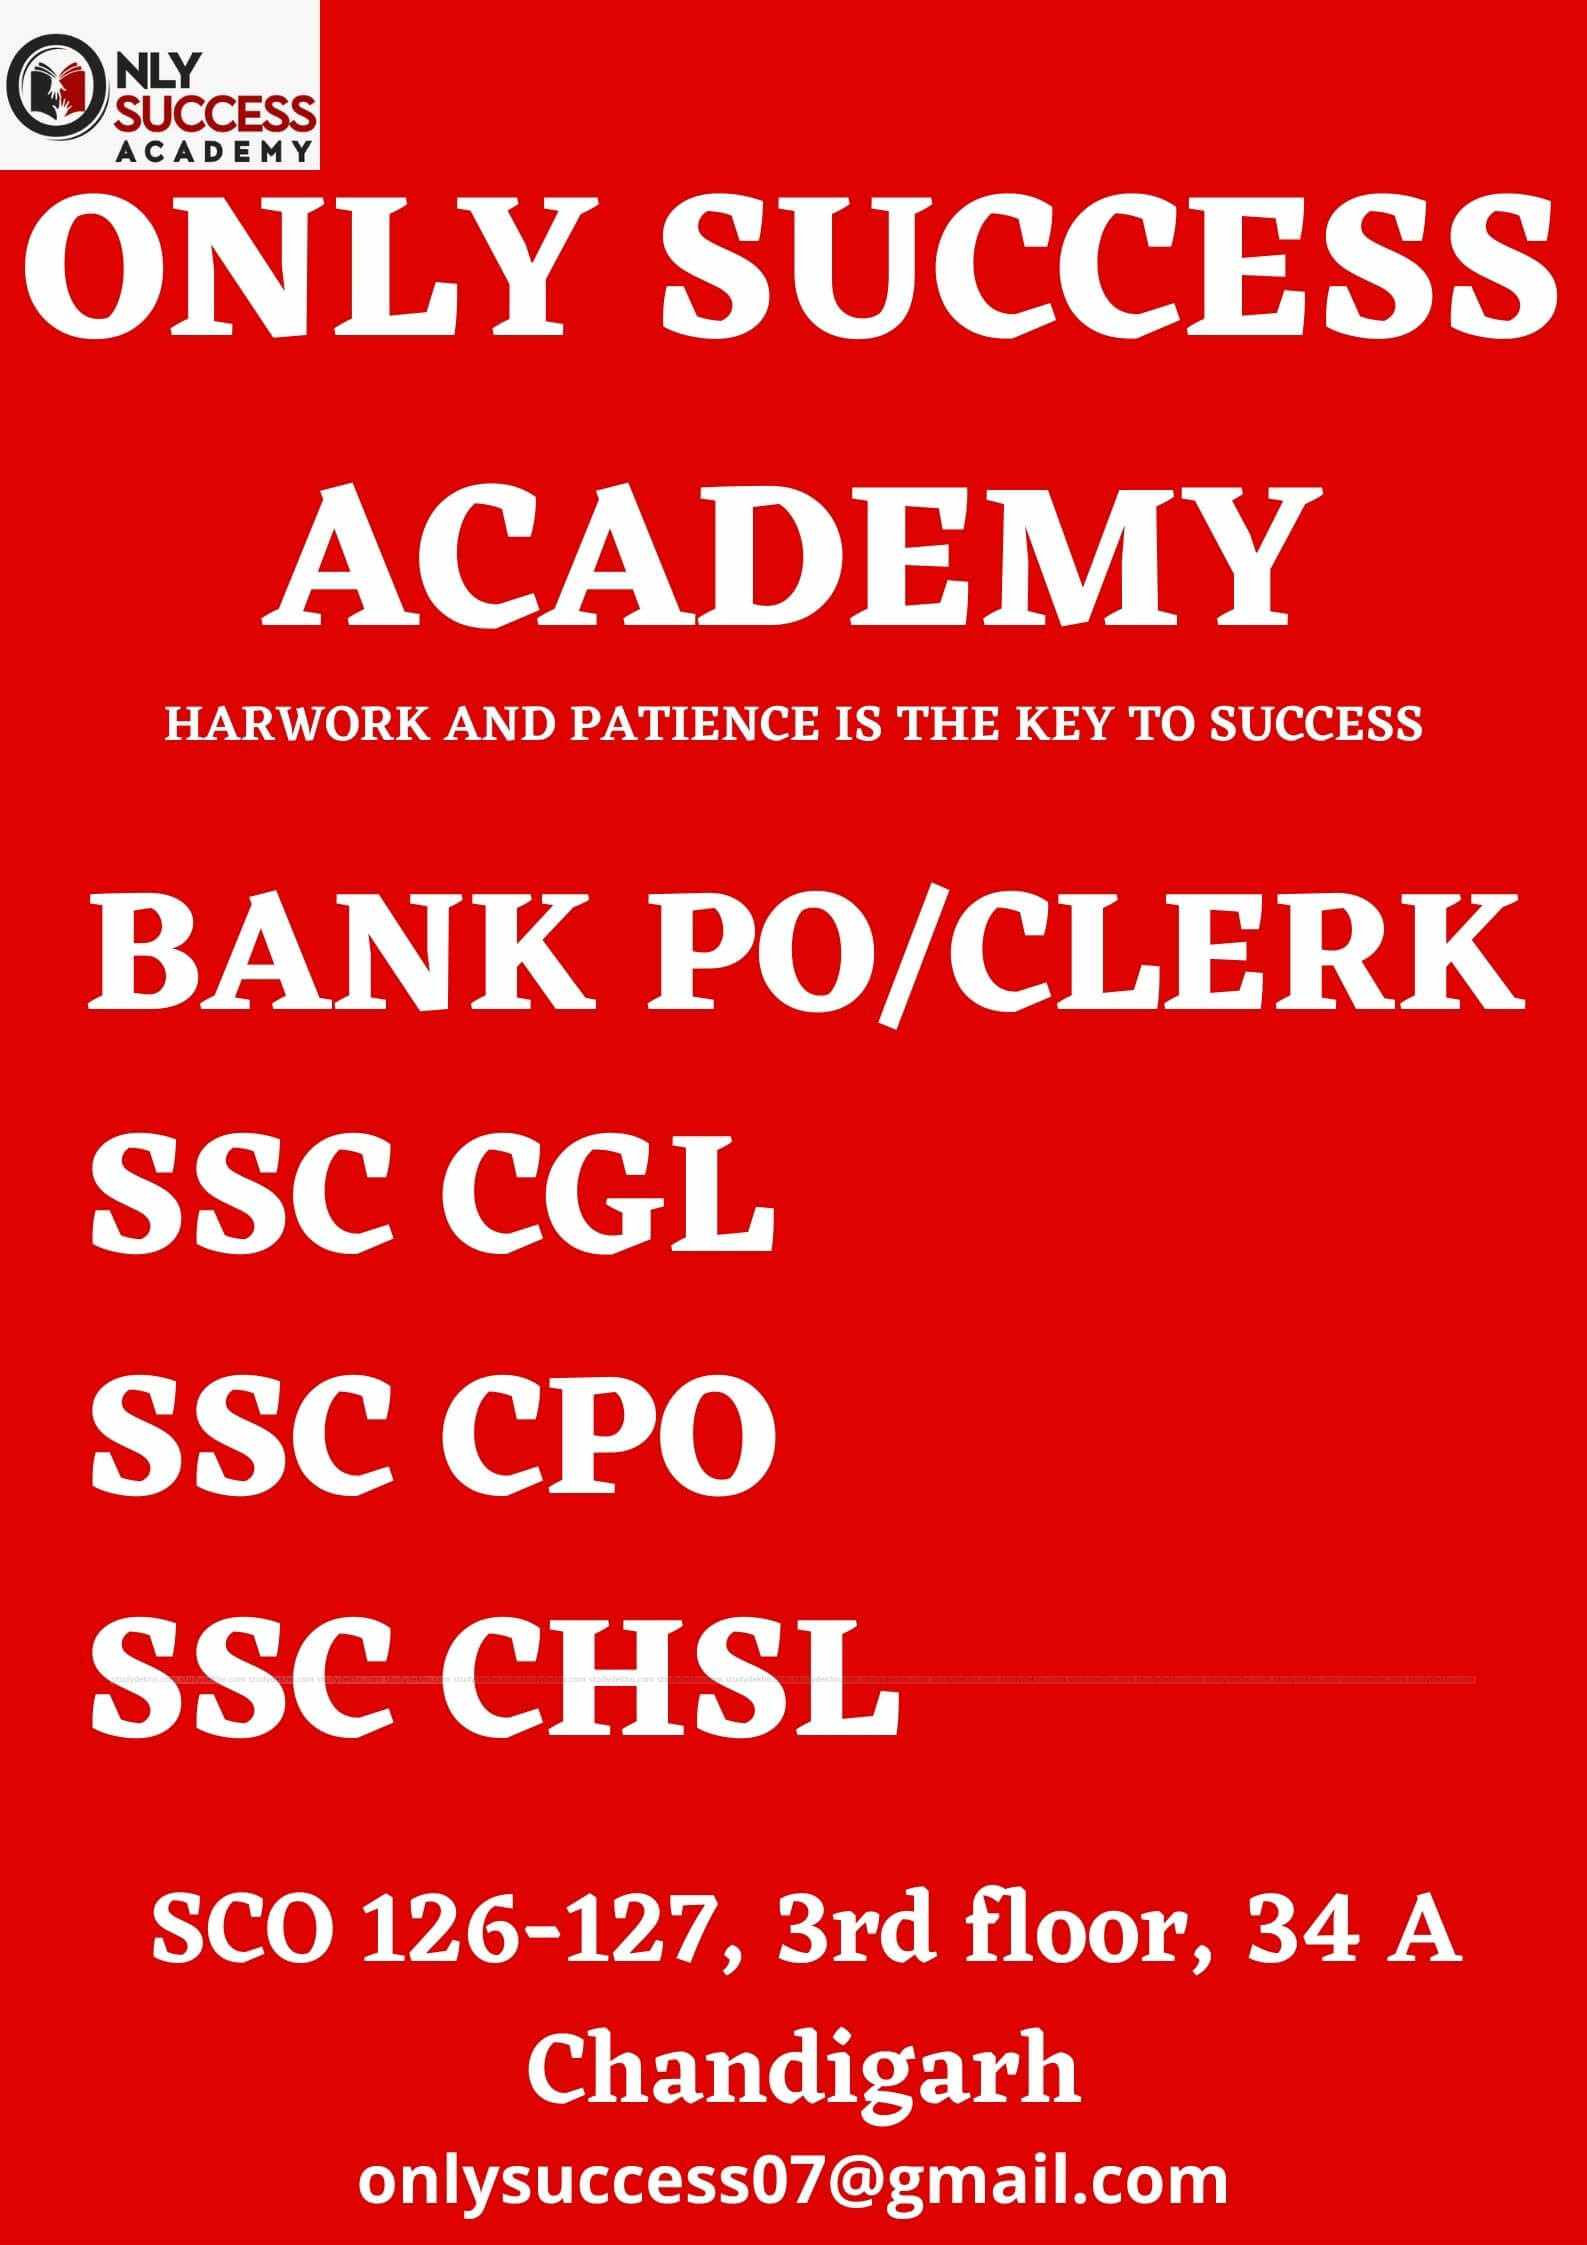 Only Success Academy Logo